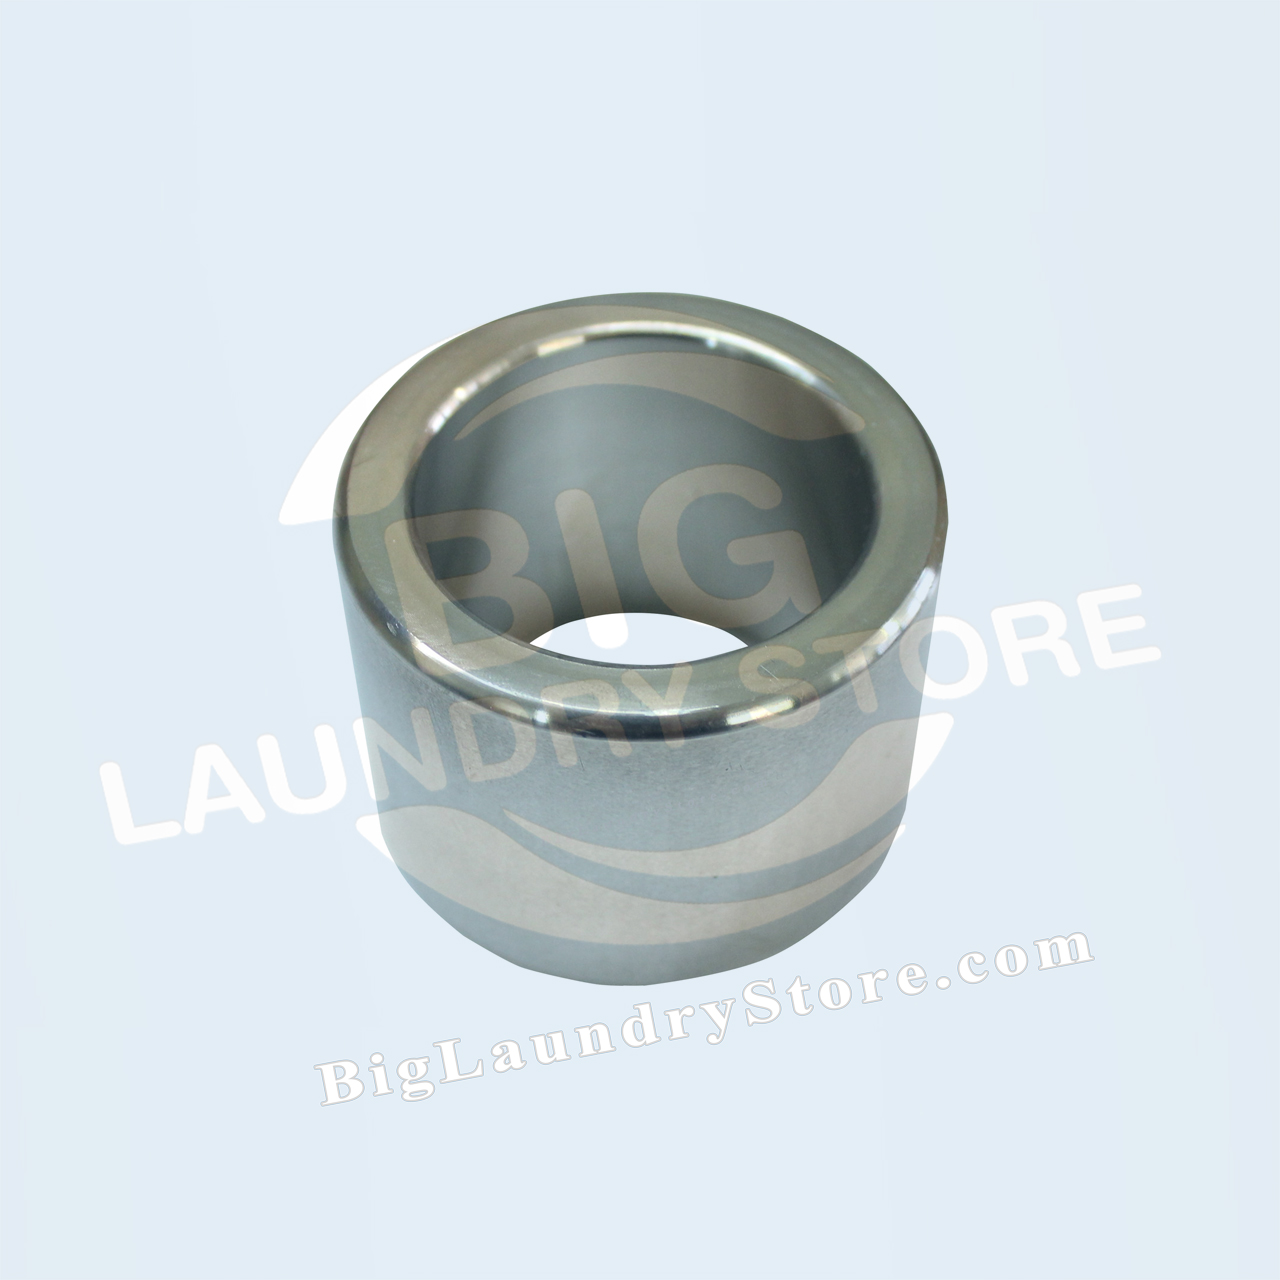 Sleeve Stainless Steel Shaft Bushing for 18lbs. Washers - Huebsch, Speed Queen or Unimac # F8312002P